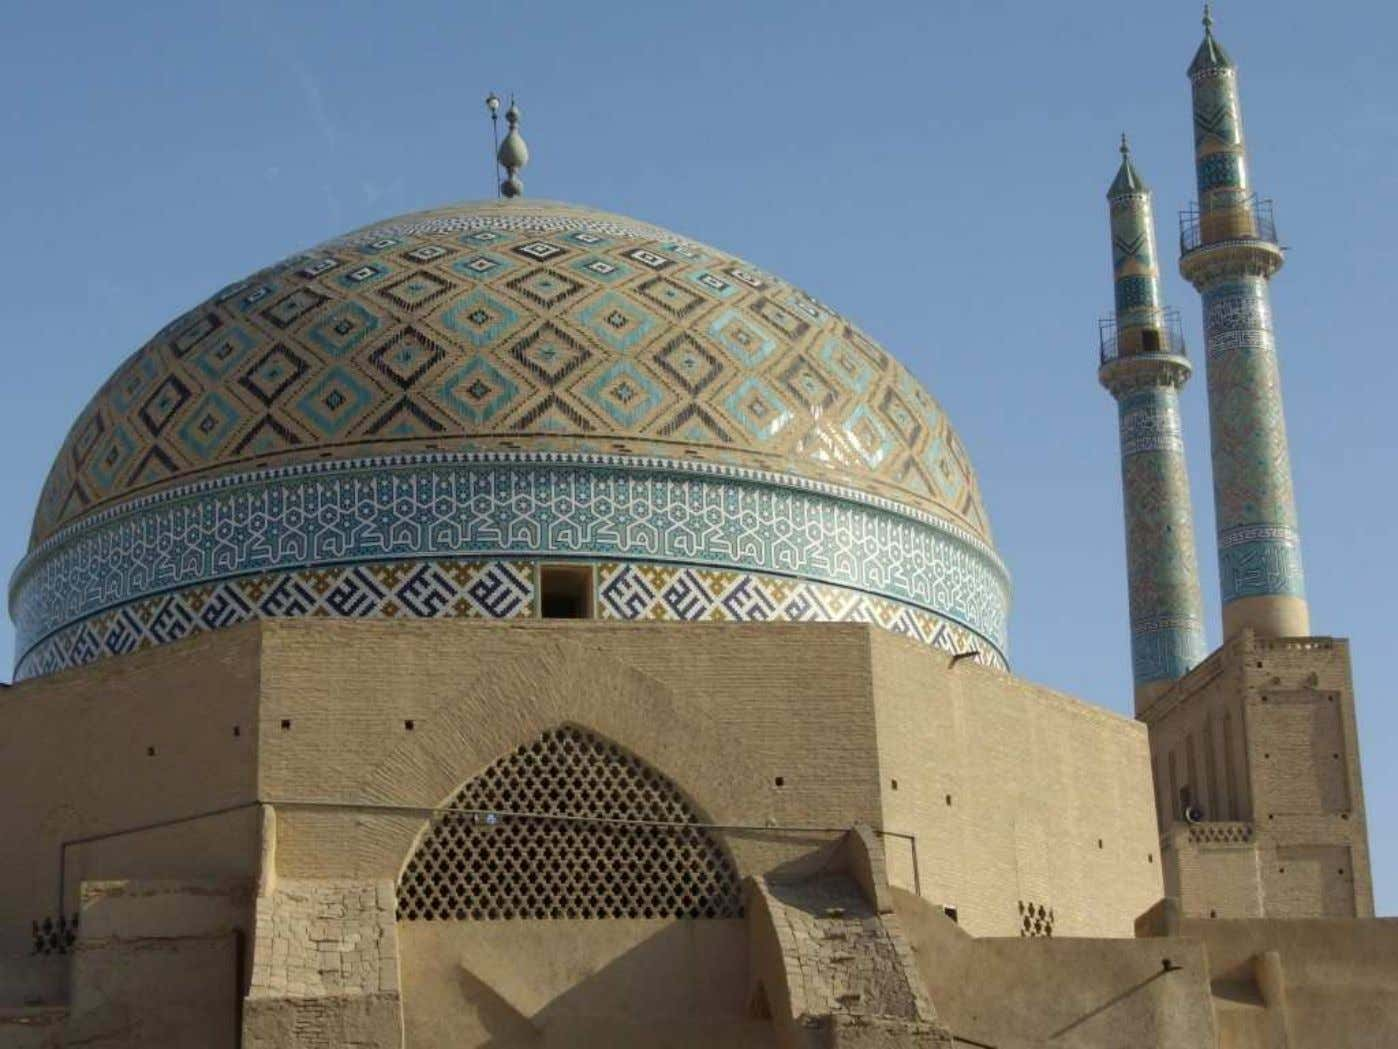 BRIDES THROW LOCK KEYS TOWARDS SUITORS : a custom surviving in Yazd. On Fridays, it